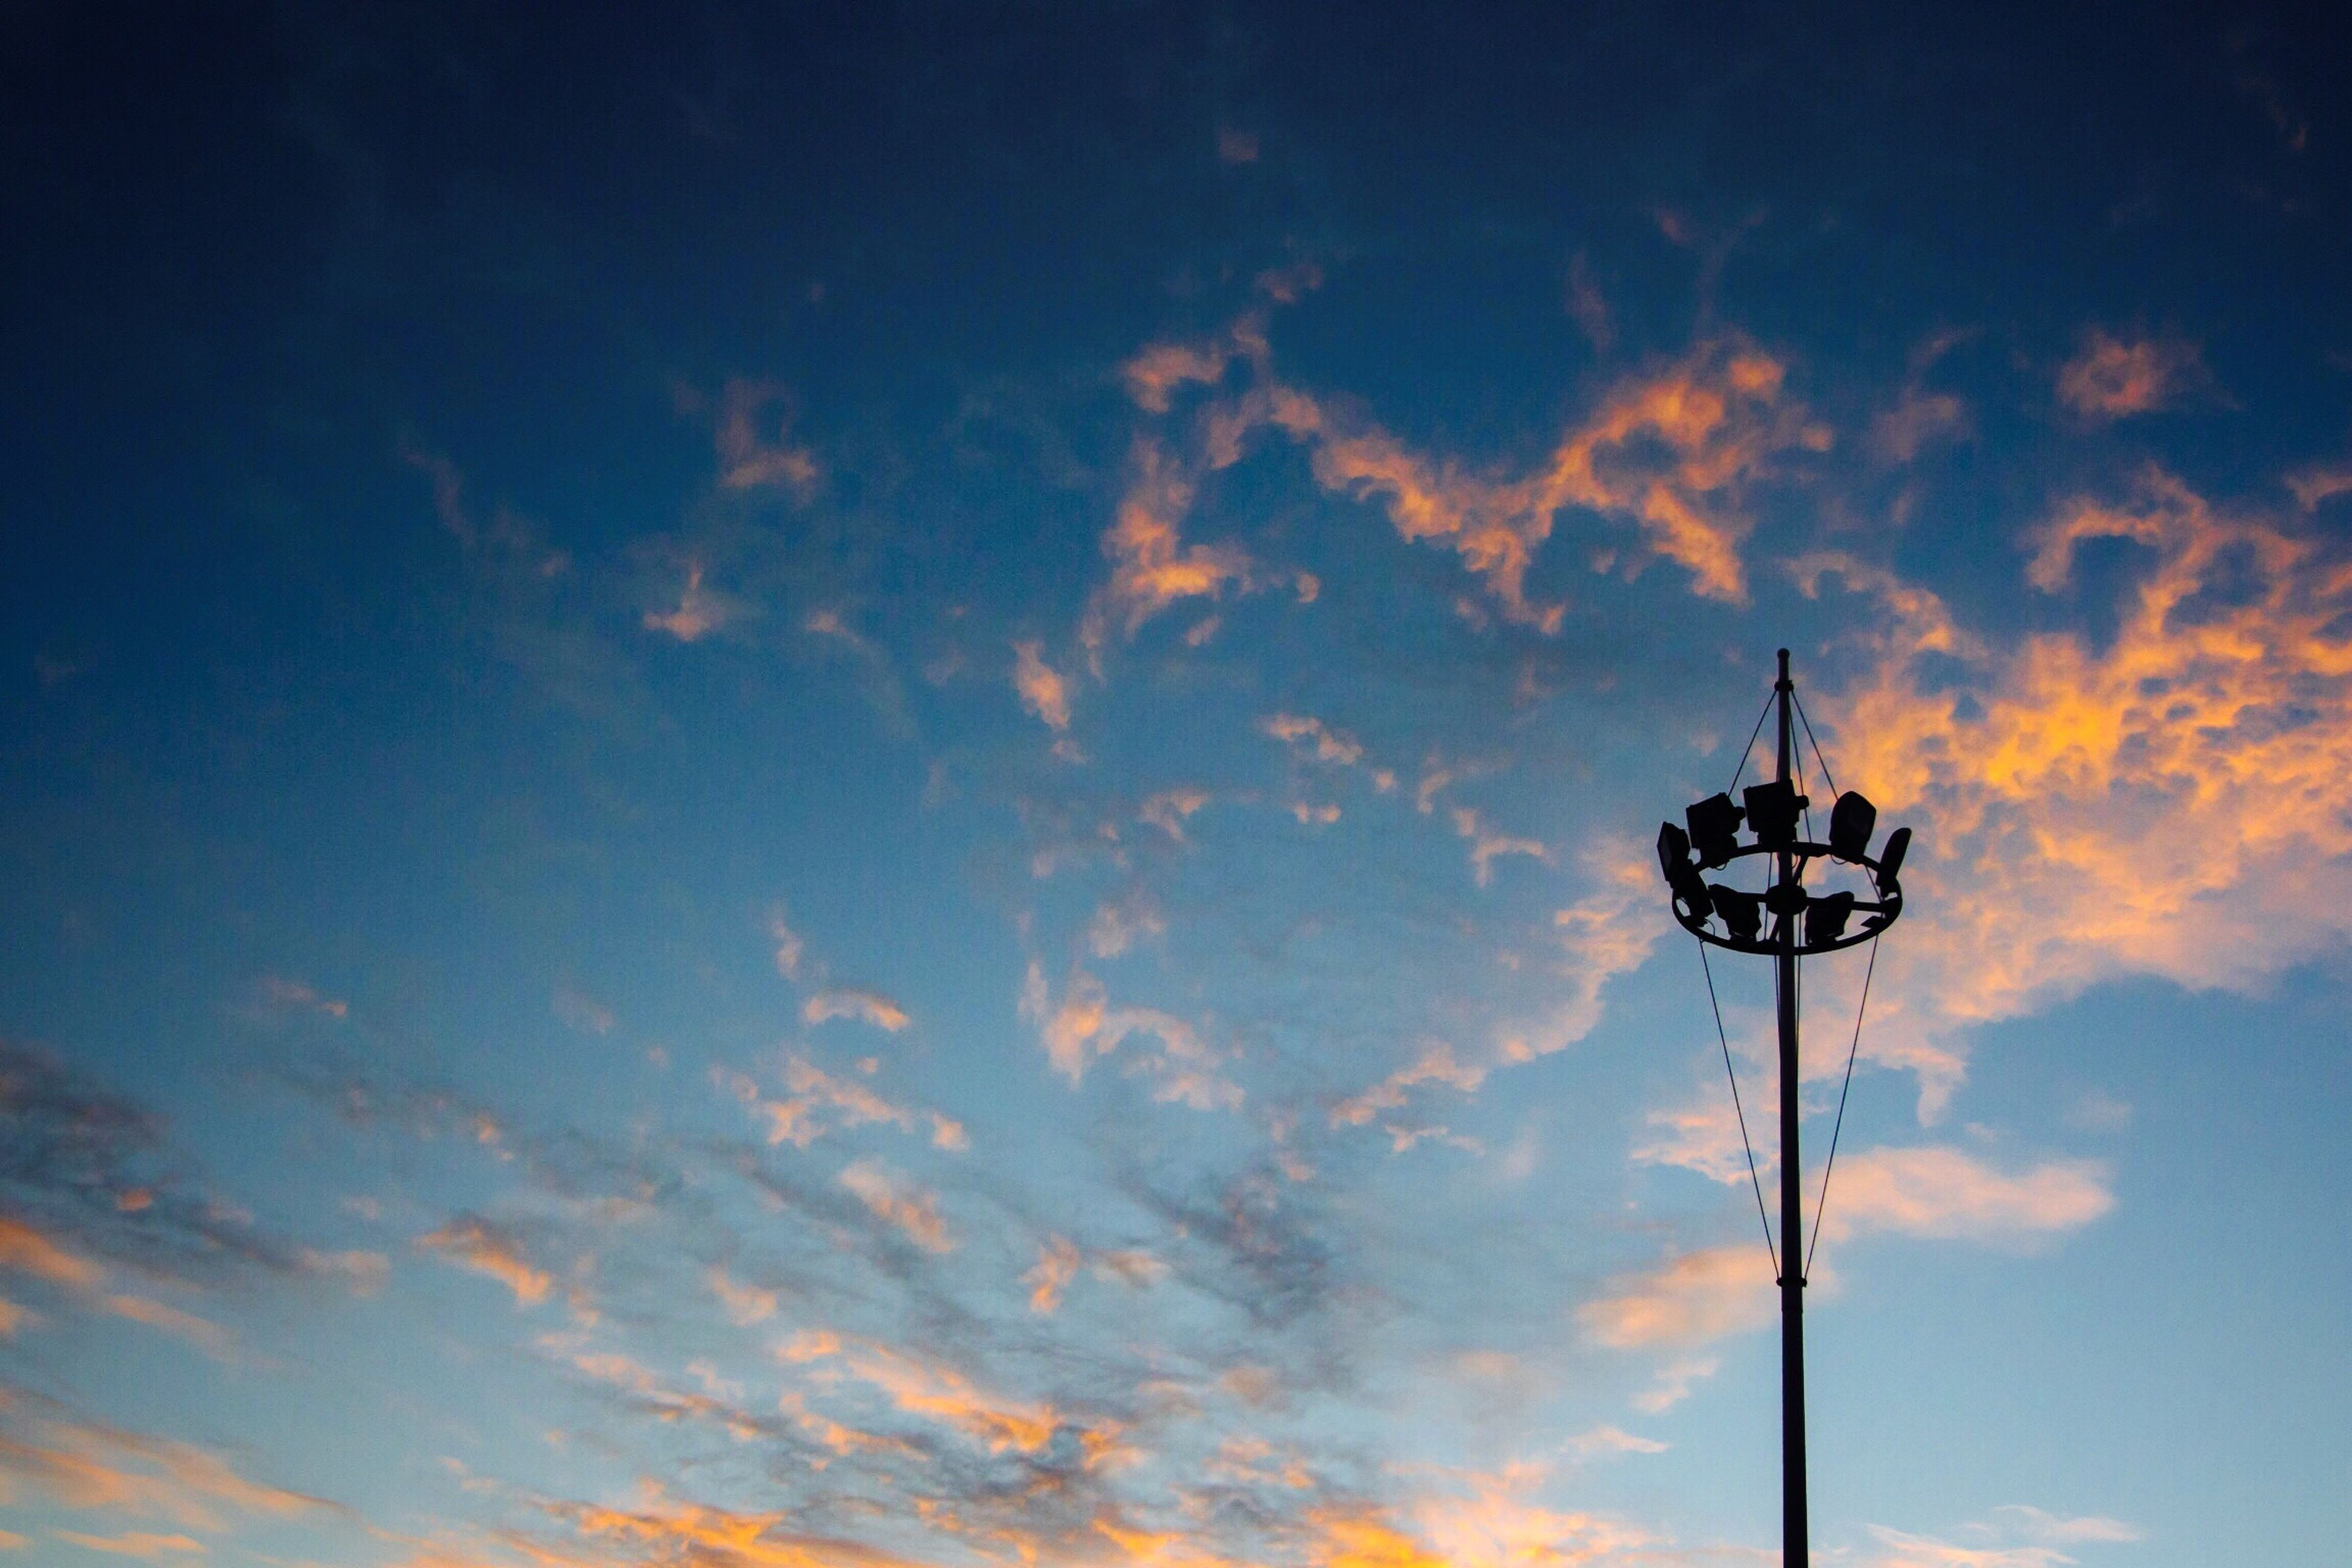 low angle view, sky, street light, cloud - sky, lighting equipment, blue, sunset, cloudy, cloud, silhouette, nature, pole, electricity, outdoors, no people, beauty in nature, technology, tranquility, dusk, orange color